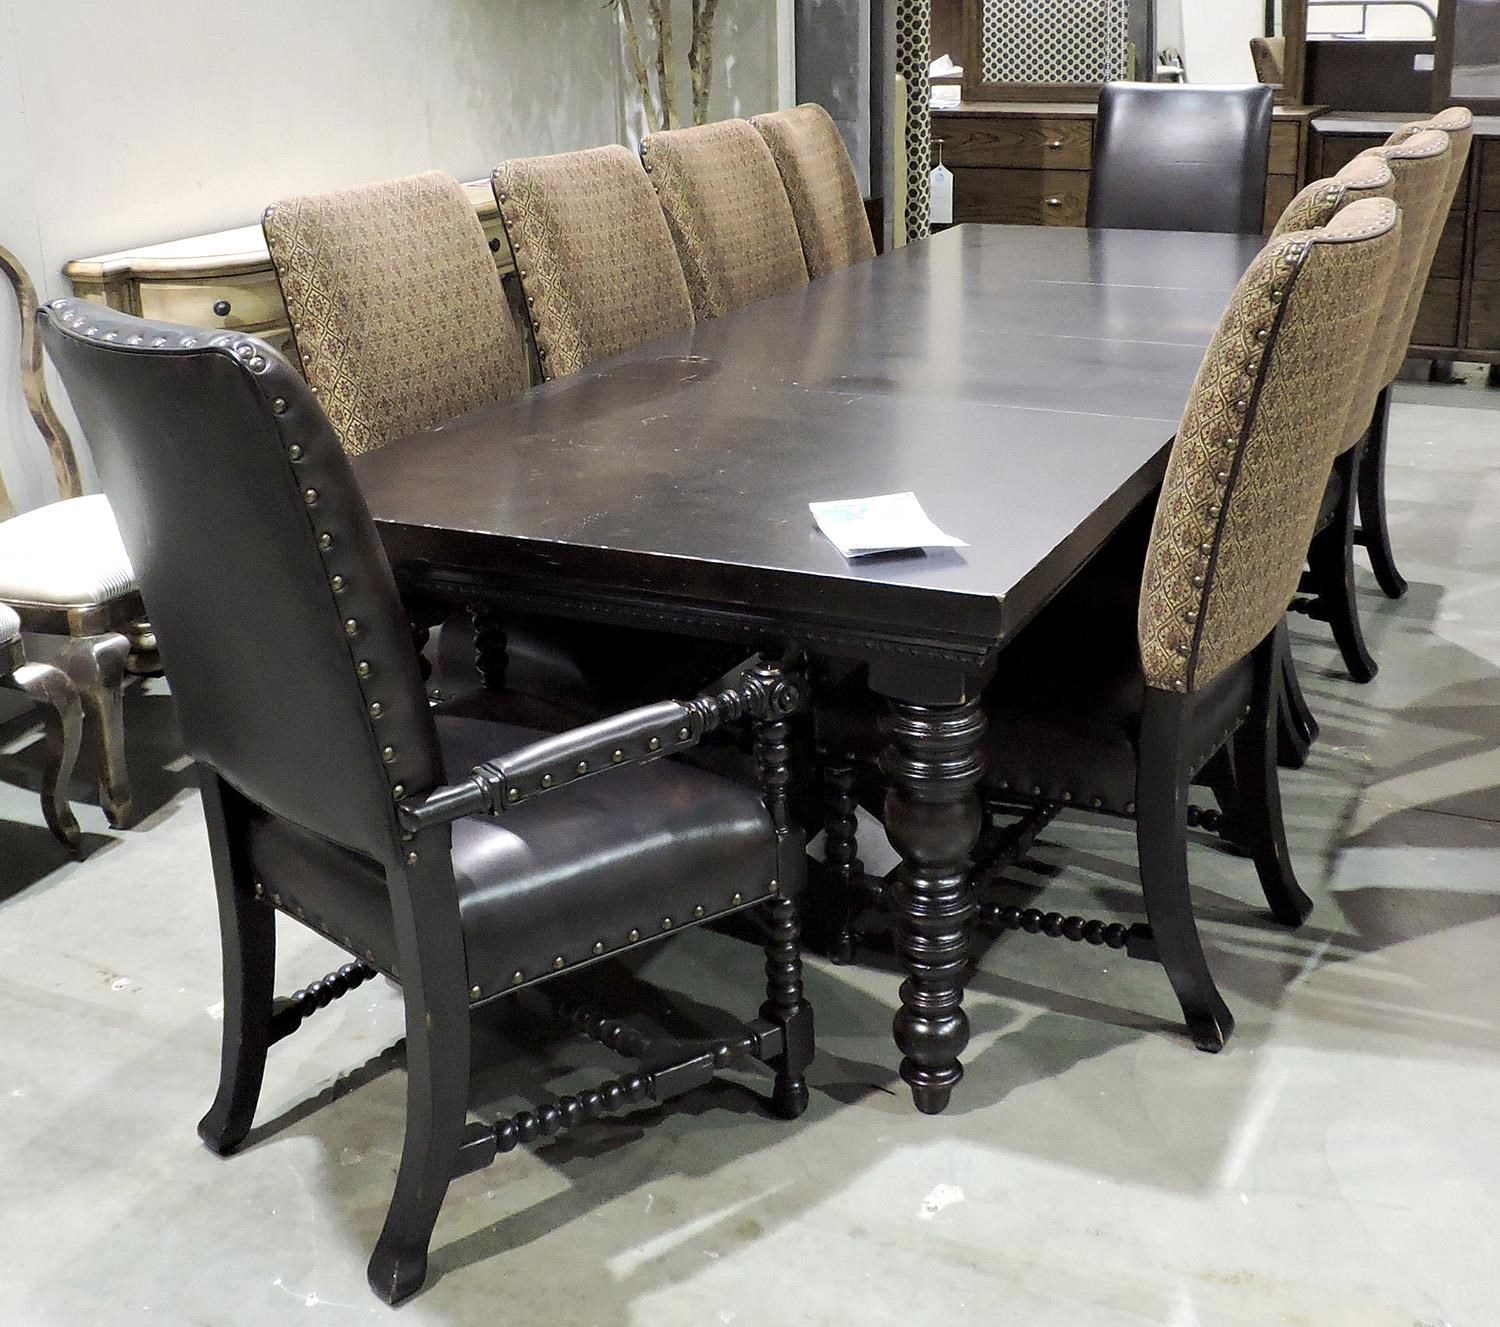 Lexington Clearance Dining Table and Chairs - Item Number: 010619877